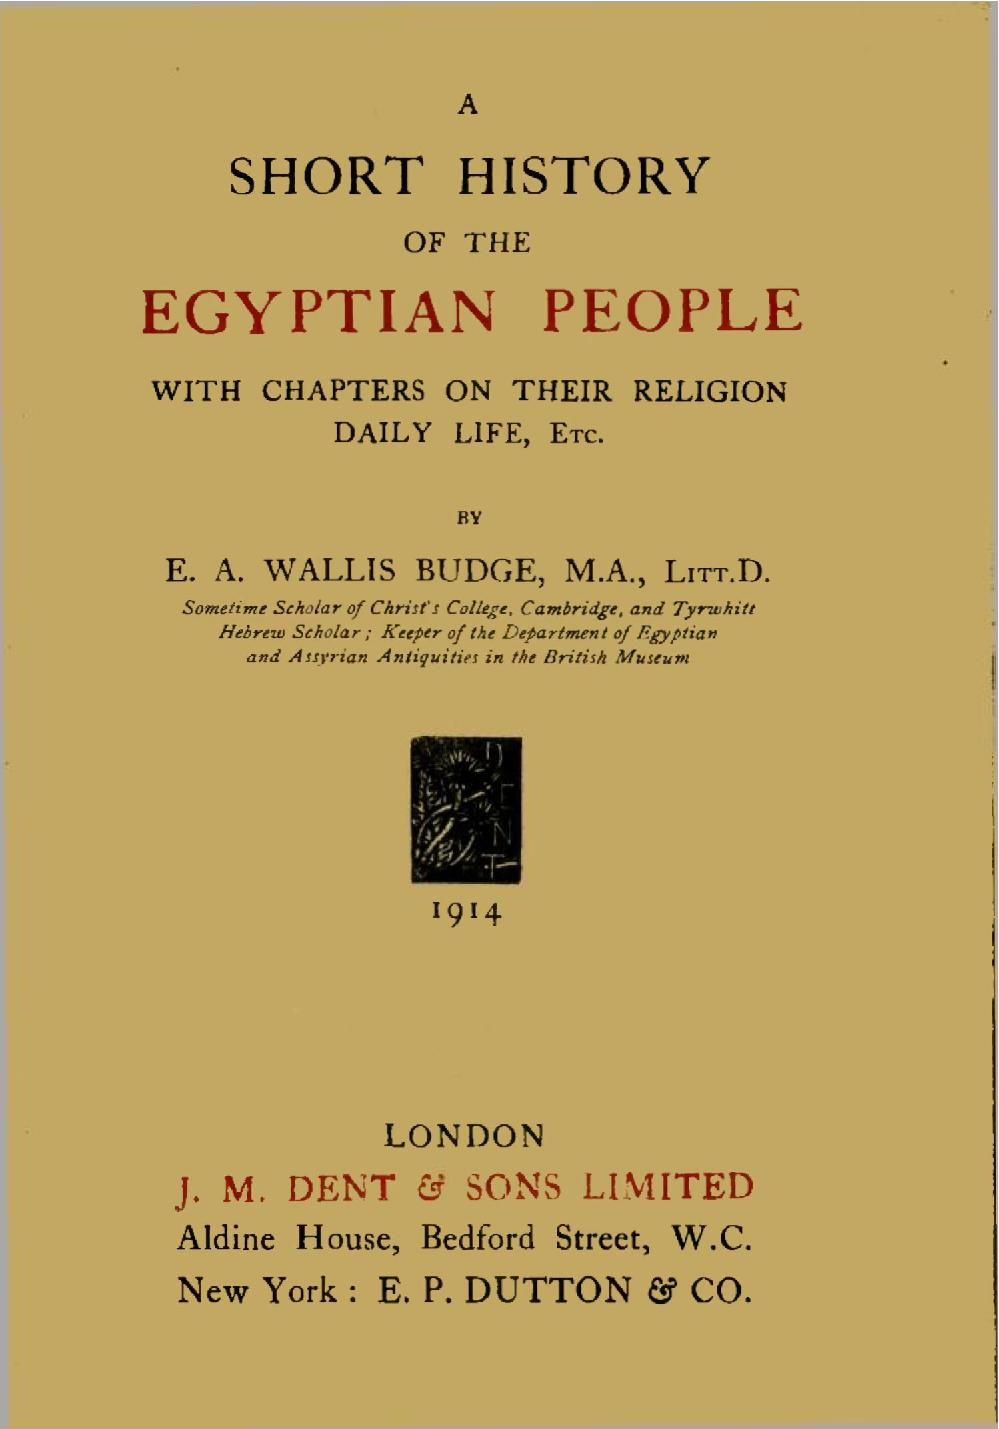 A Short History Of The Egyptian People By E A Wallis Budge